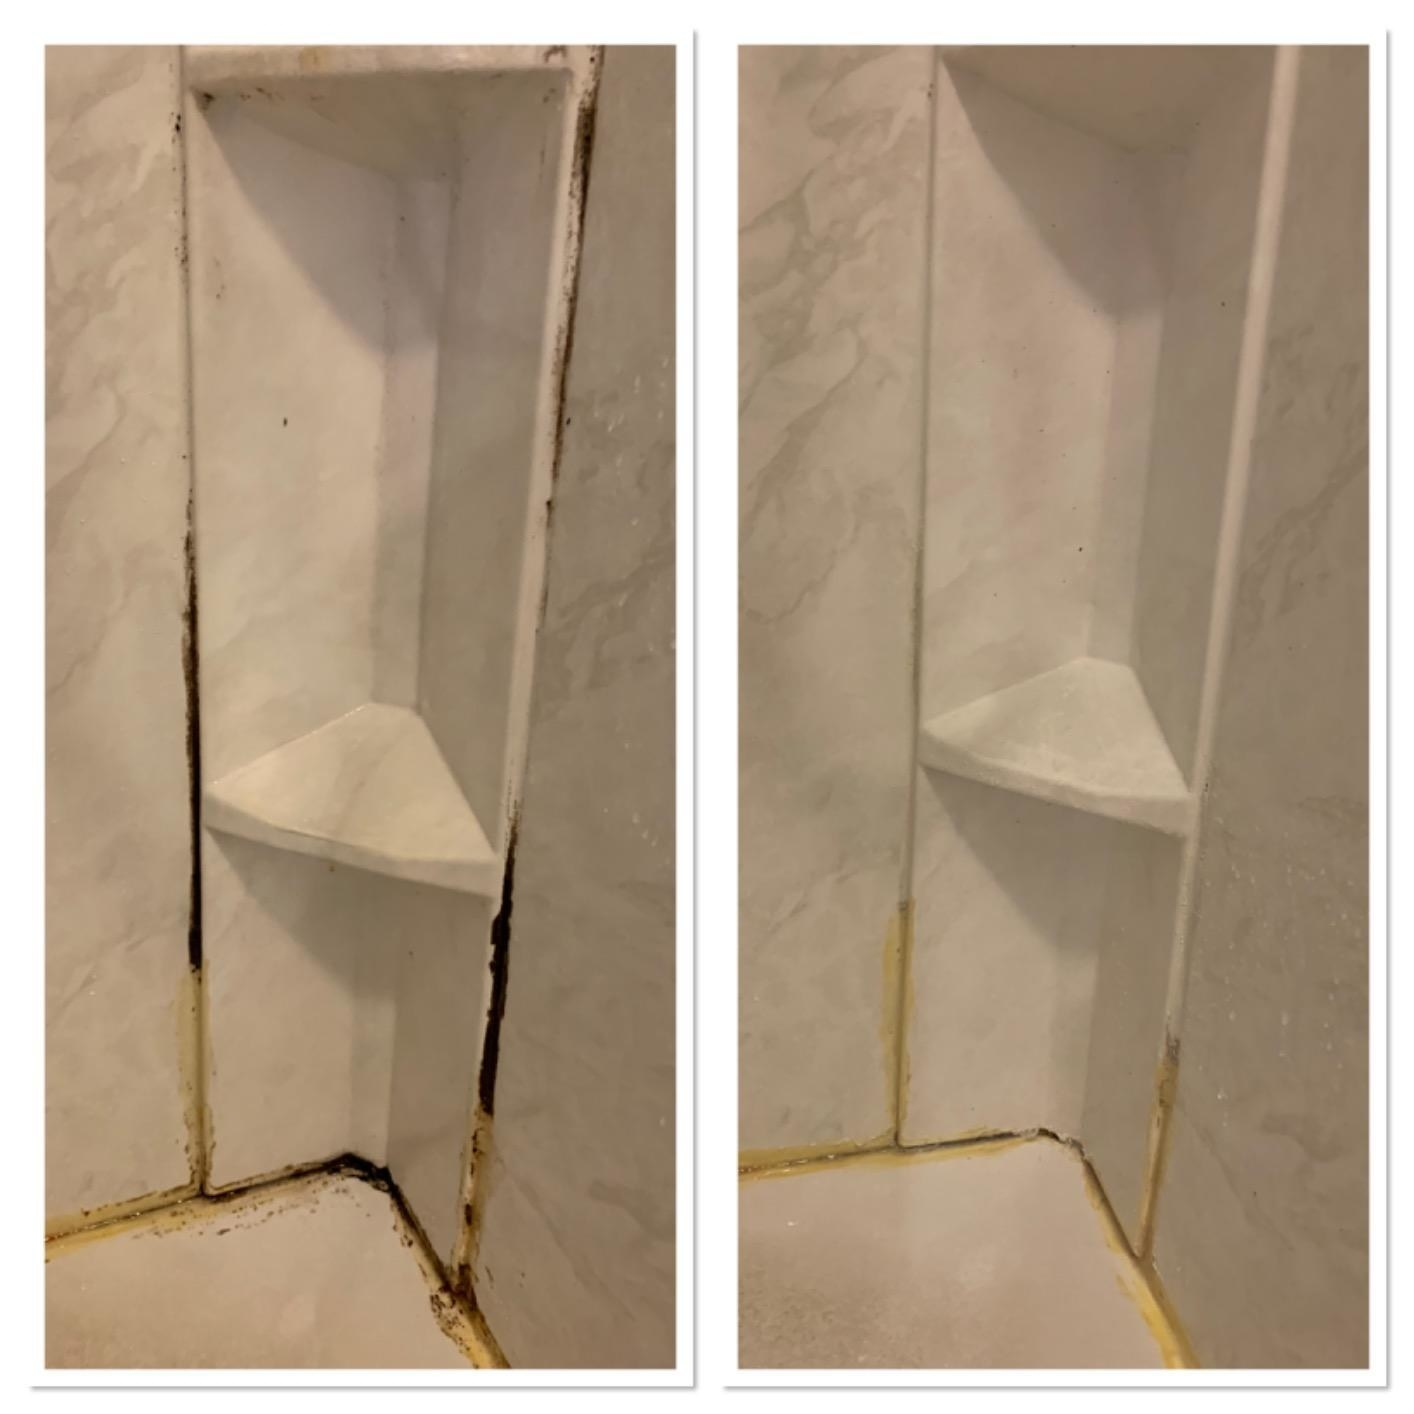 A reviewer's before/after of a shower corner with black mold, and then the same corner clean